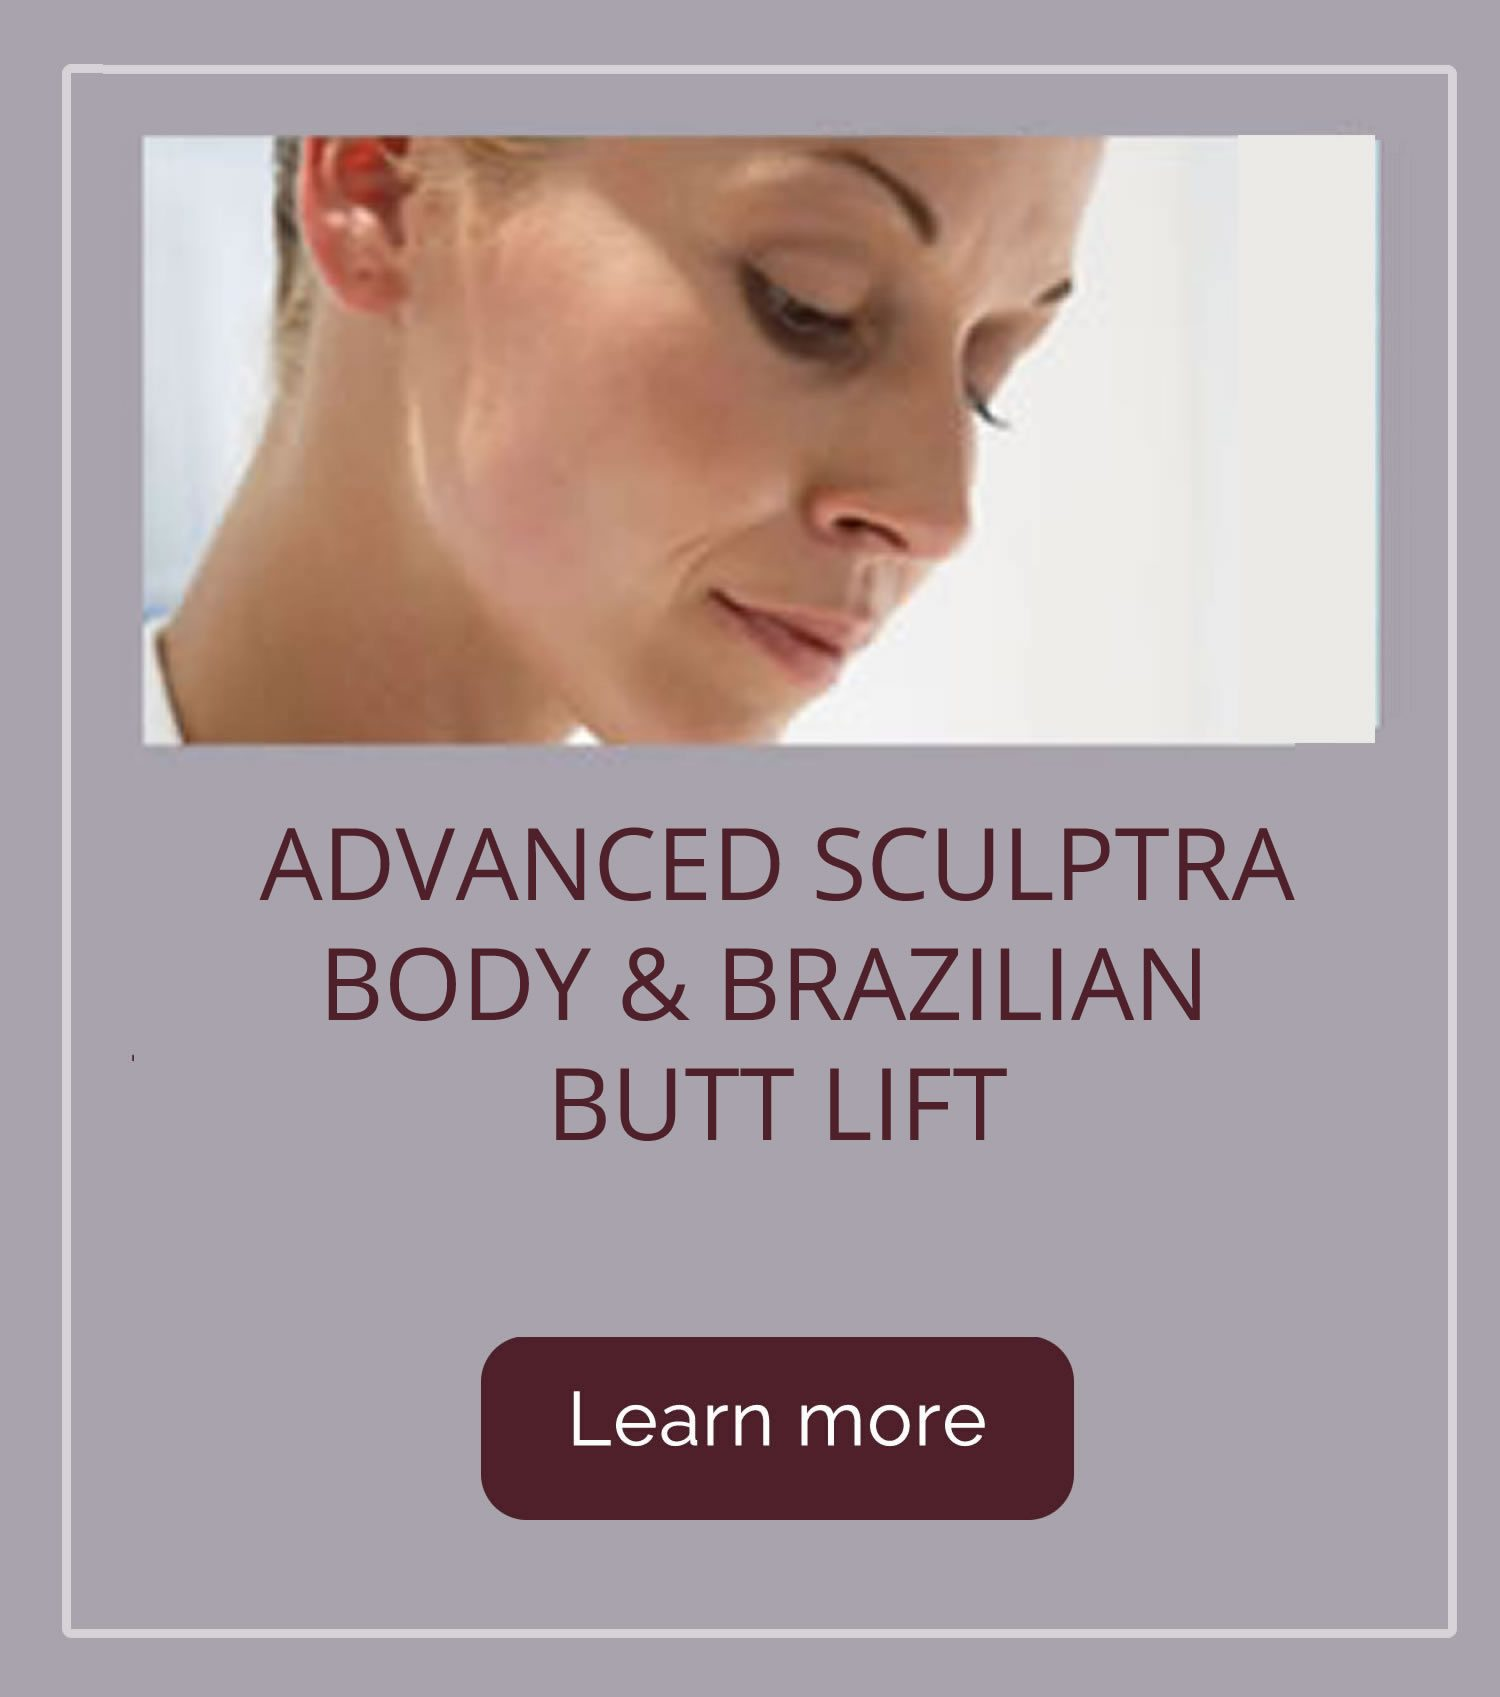 Advanced Sculptra Body & Brazilian Butt Lift